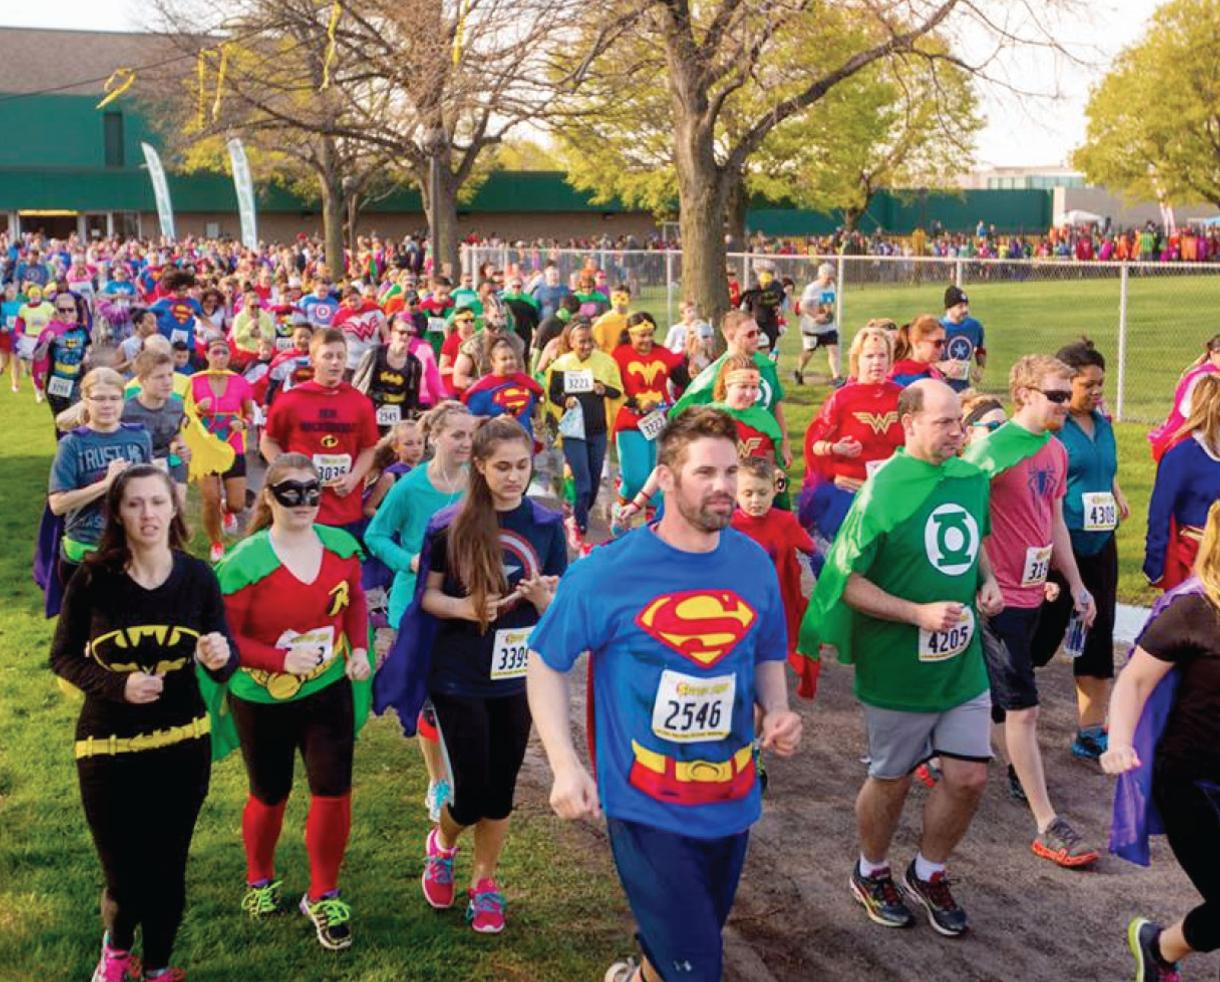 The Super Run Family 5K Race to Support Local Non-Profits